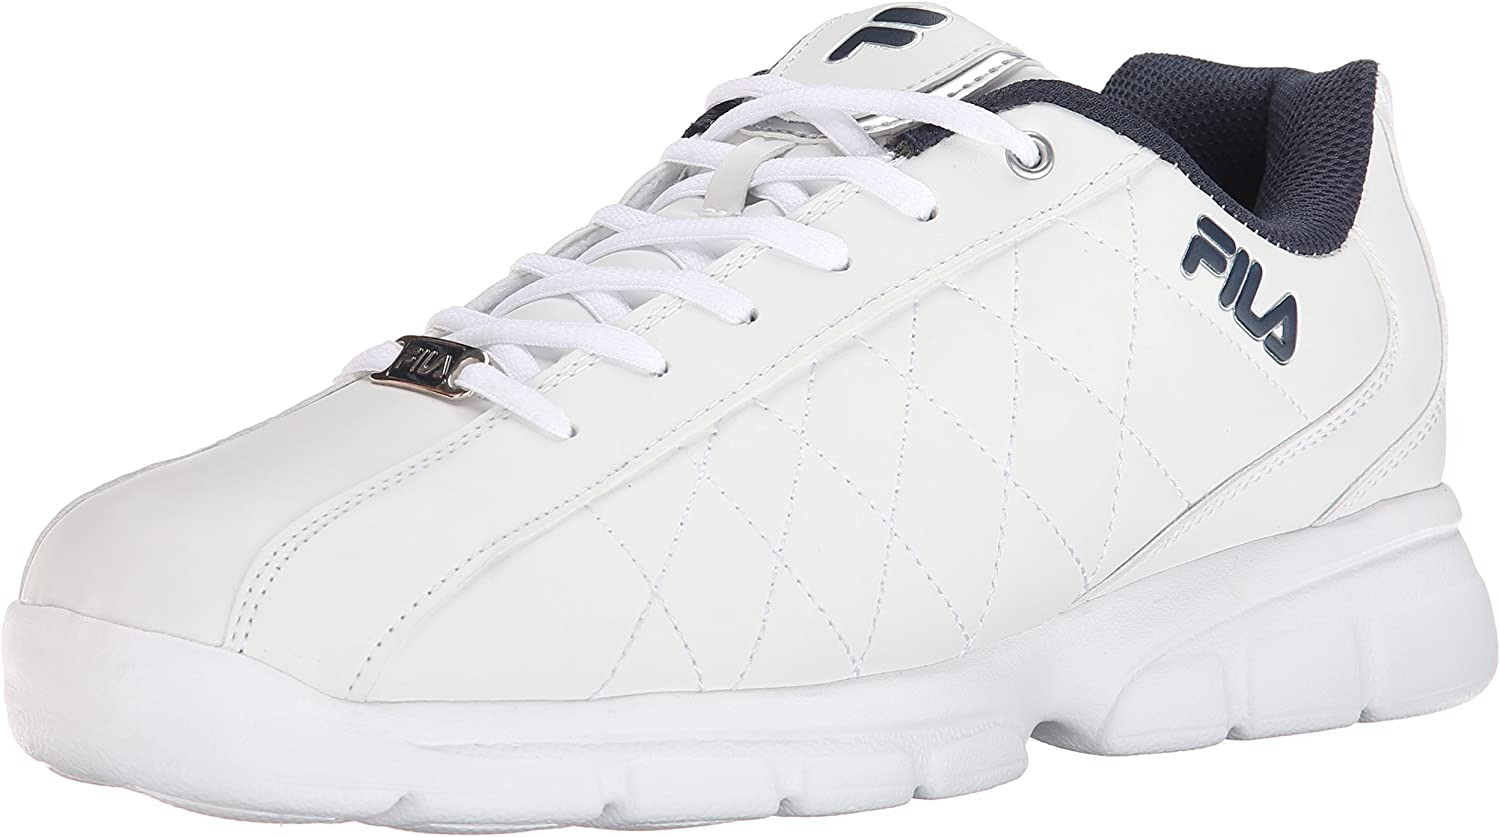 Fila Men's Fulcrum 3 Cross Trainer